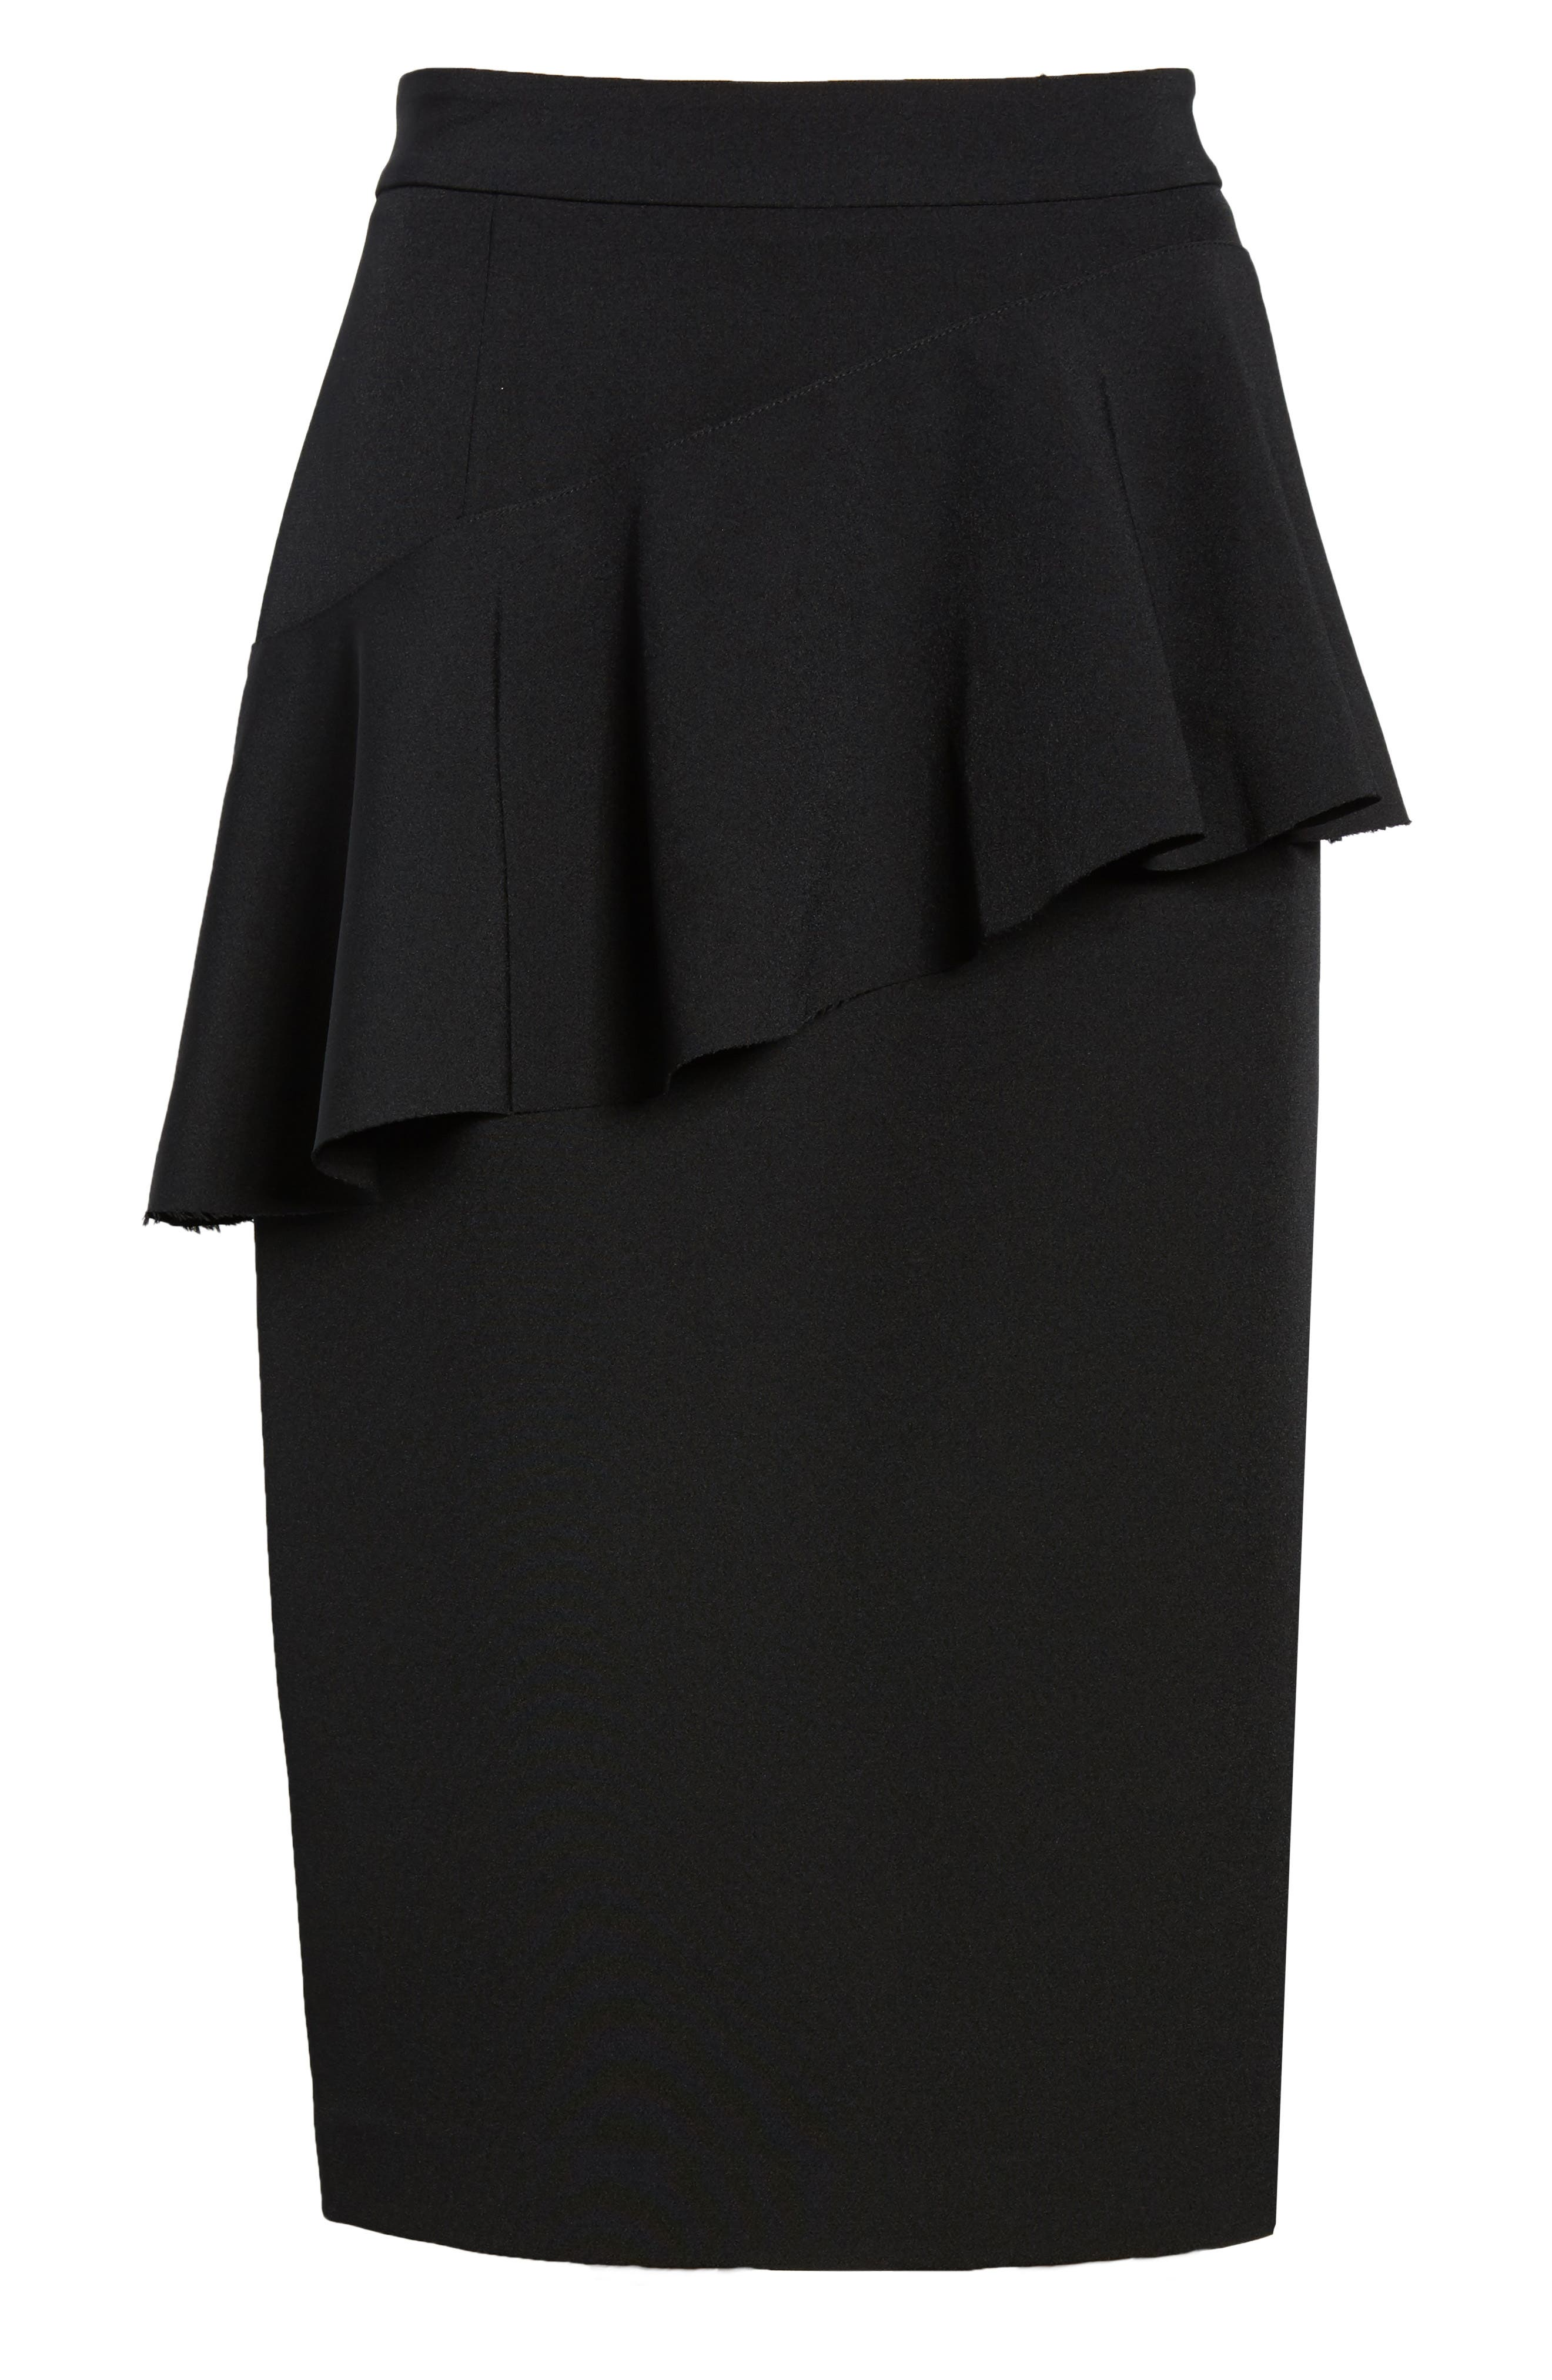 Ruffle Detail Pencil Skirt,                             Alternate thumbnail 6, color,                             Black